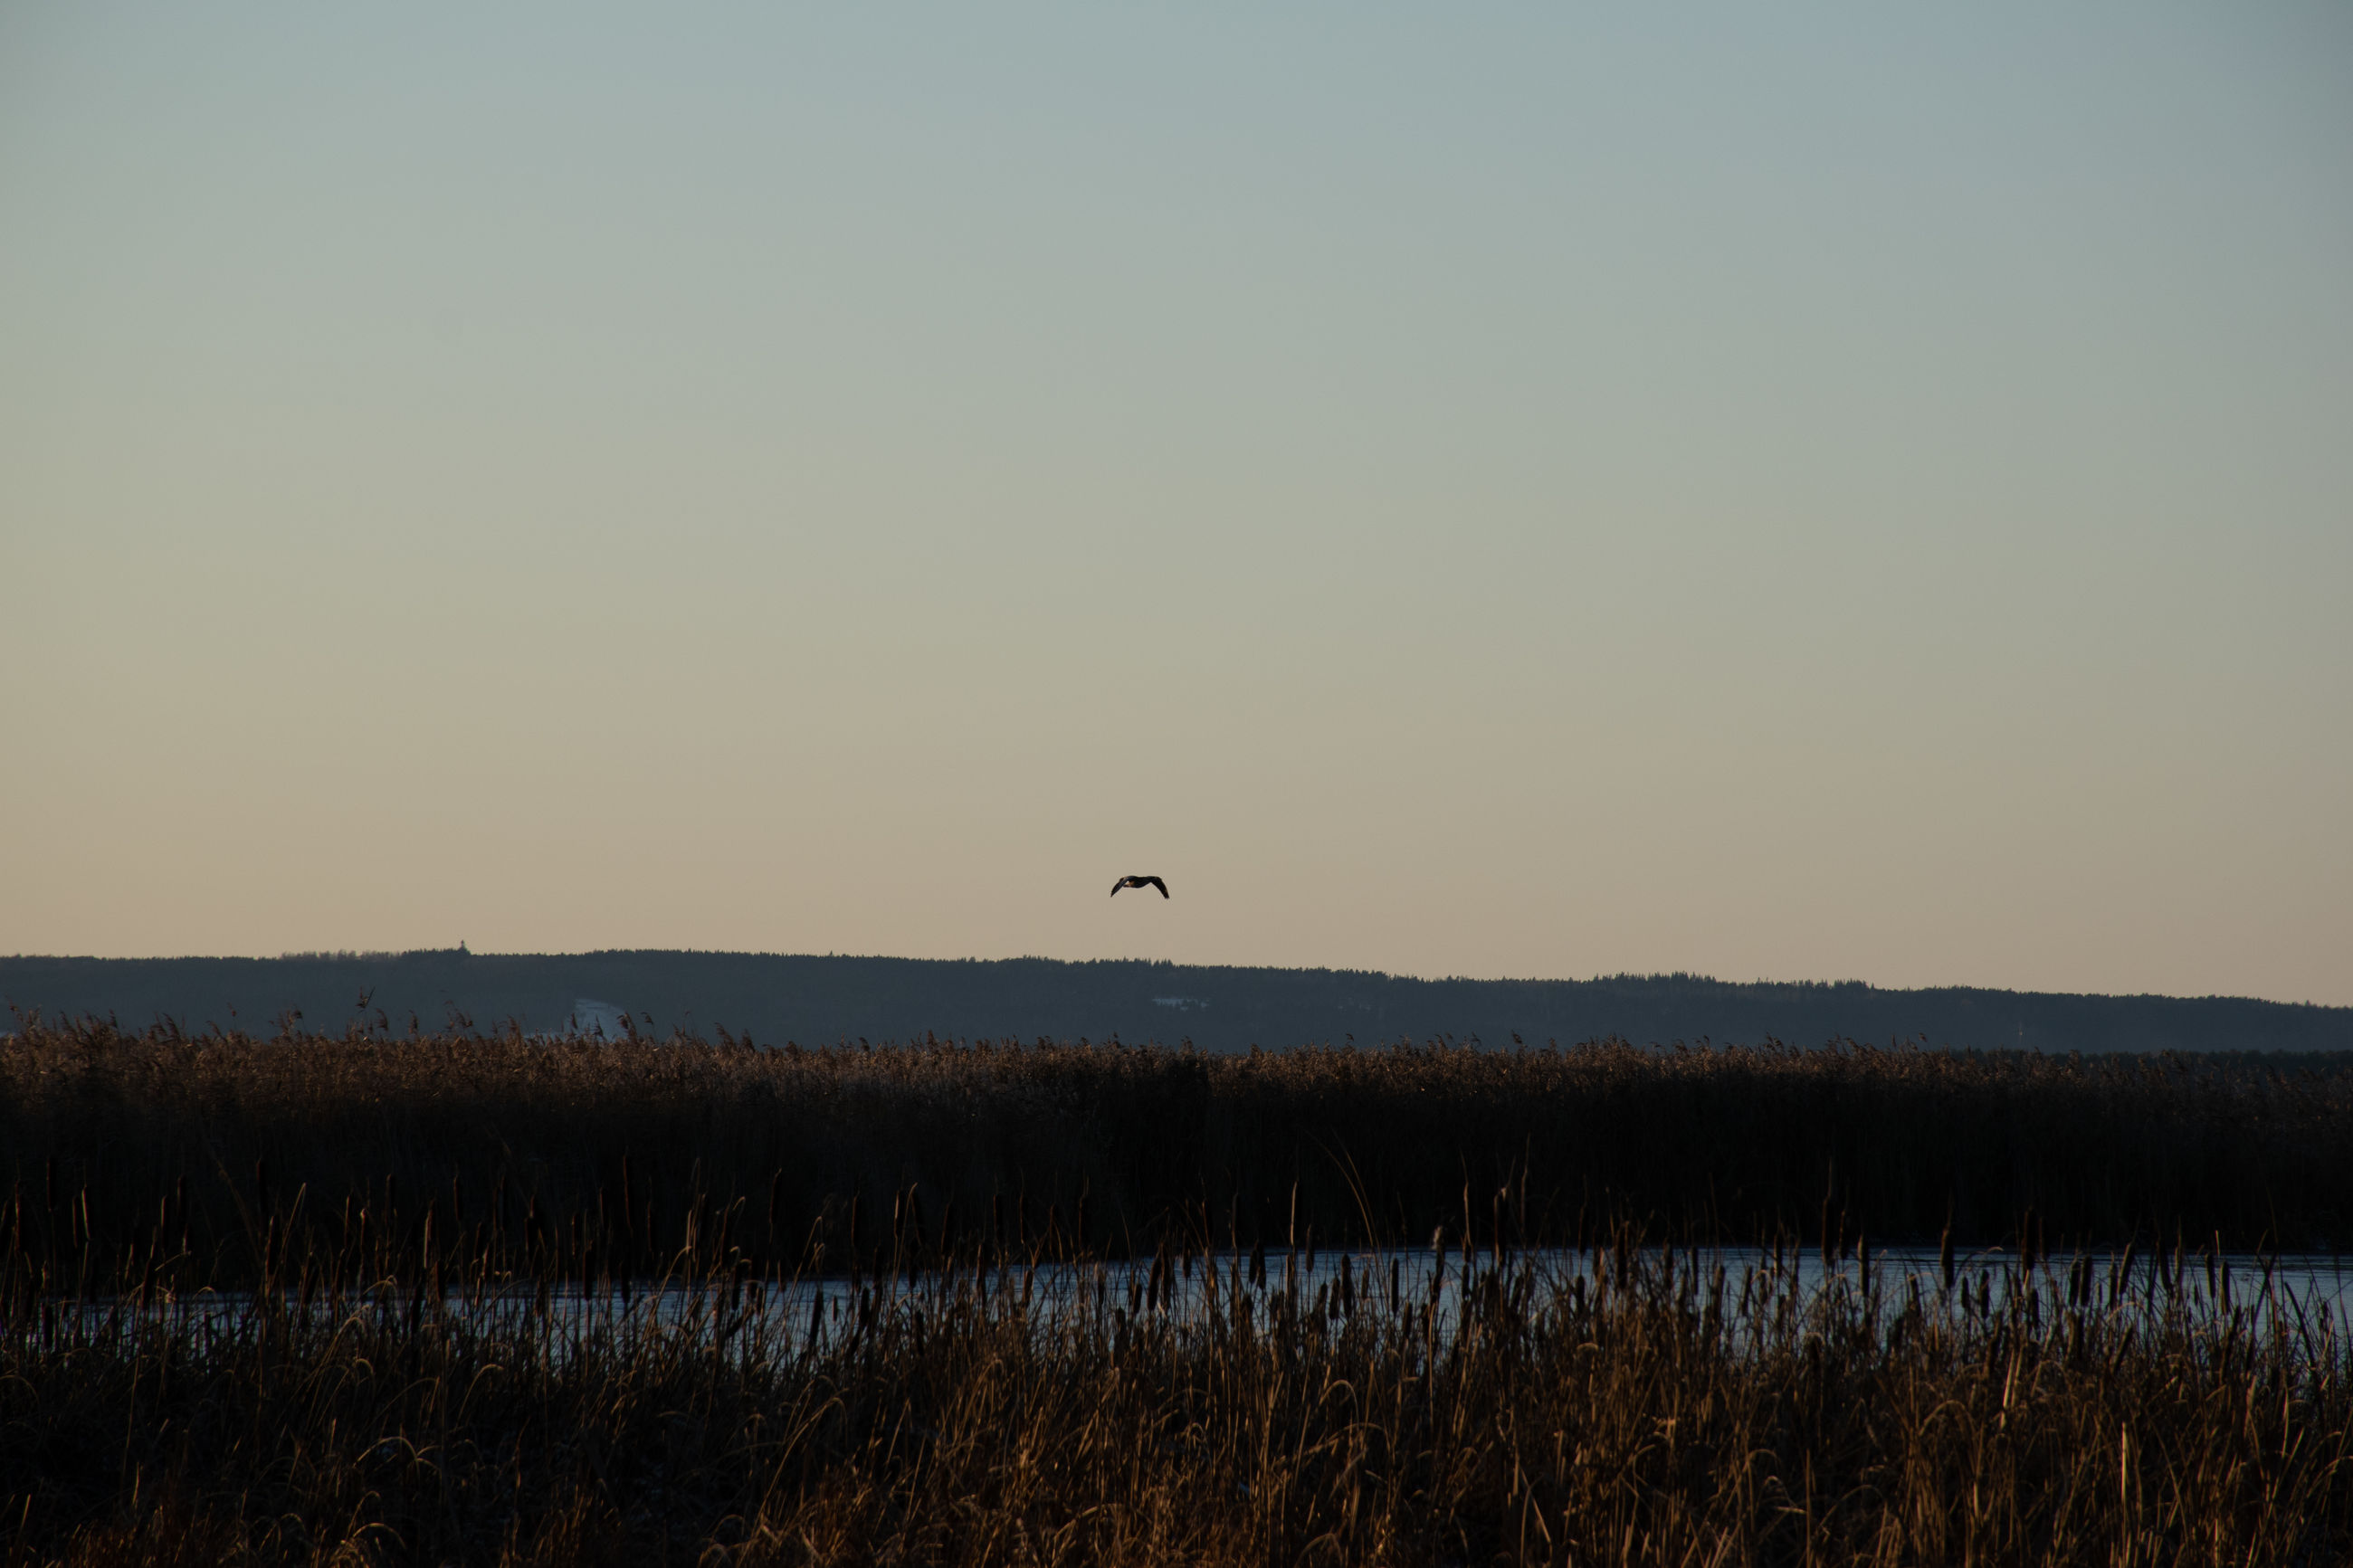 Bird flying over lake against clear sky during sunset